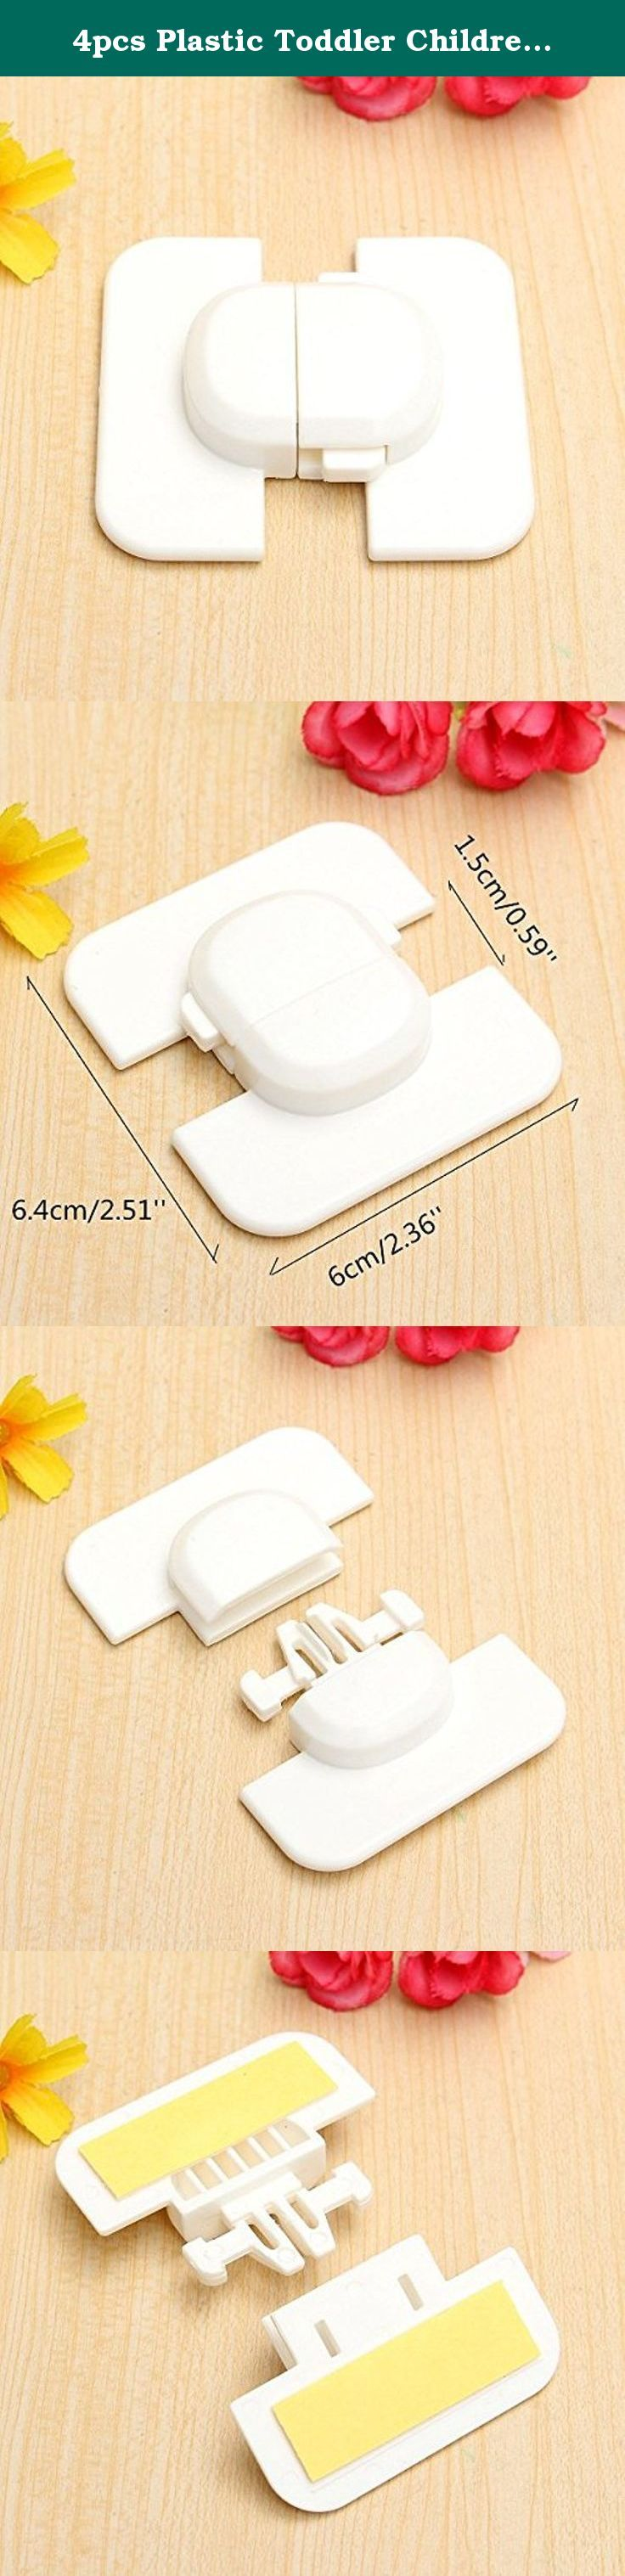 4pcs Plastic Toddler Children Baby Kids Fridge Drawer Cupboard Cabinet Safety Locks. Description : 4pcs Plastic Toddler Children Baby Kids Fridge Drawer Cupboard Cabinet Safety Locks Made of high quality plastic material,durable Perfect for the refrigerator door, cover in the home. To prevent the baby swallowed something by curiosity, reduce the unnecessary injury. It is a good way to protect your baby. Specification : Material : Plastic Color : White Size : 6 x 6.4cm/2.36'' x…